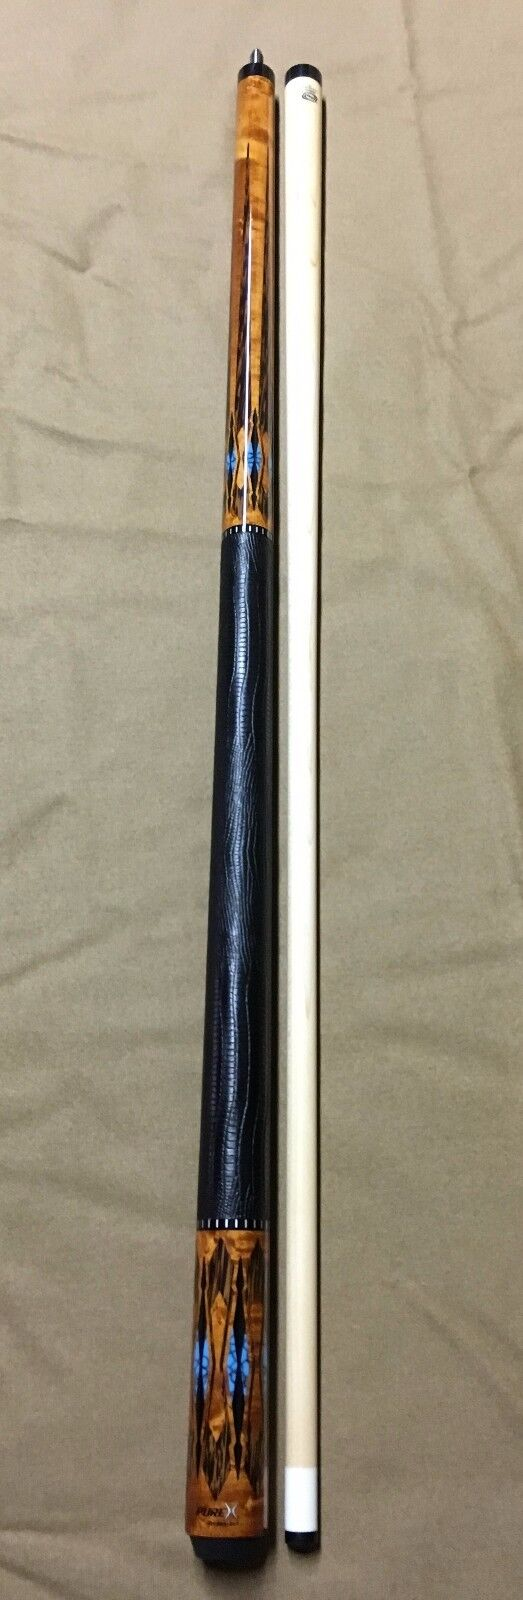 Players Hxte2 Pool Cue W Hxt Shaft Amp Free Extras Amp Free